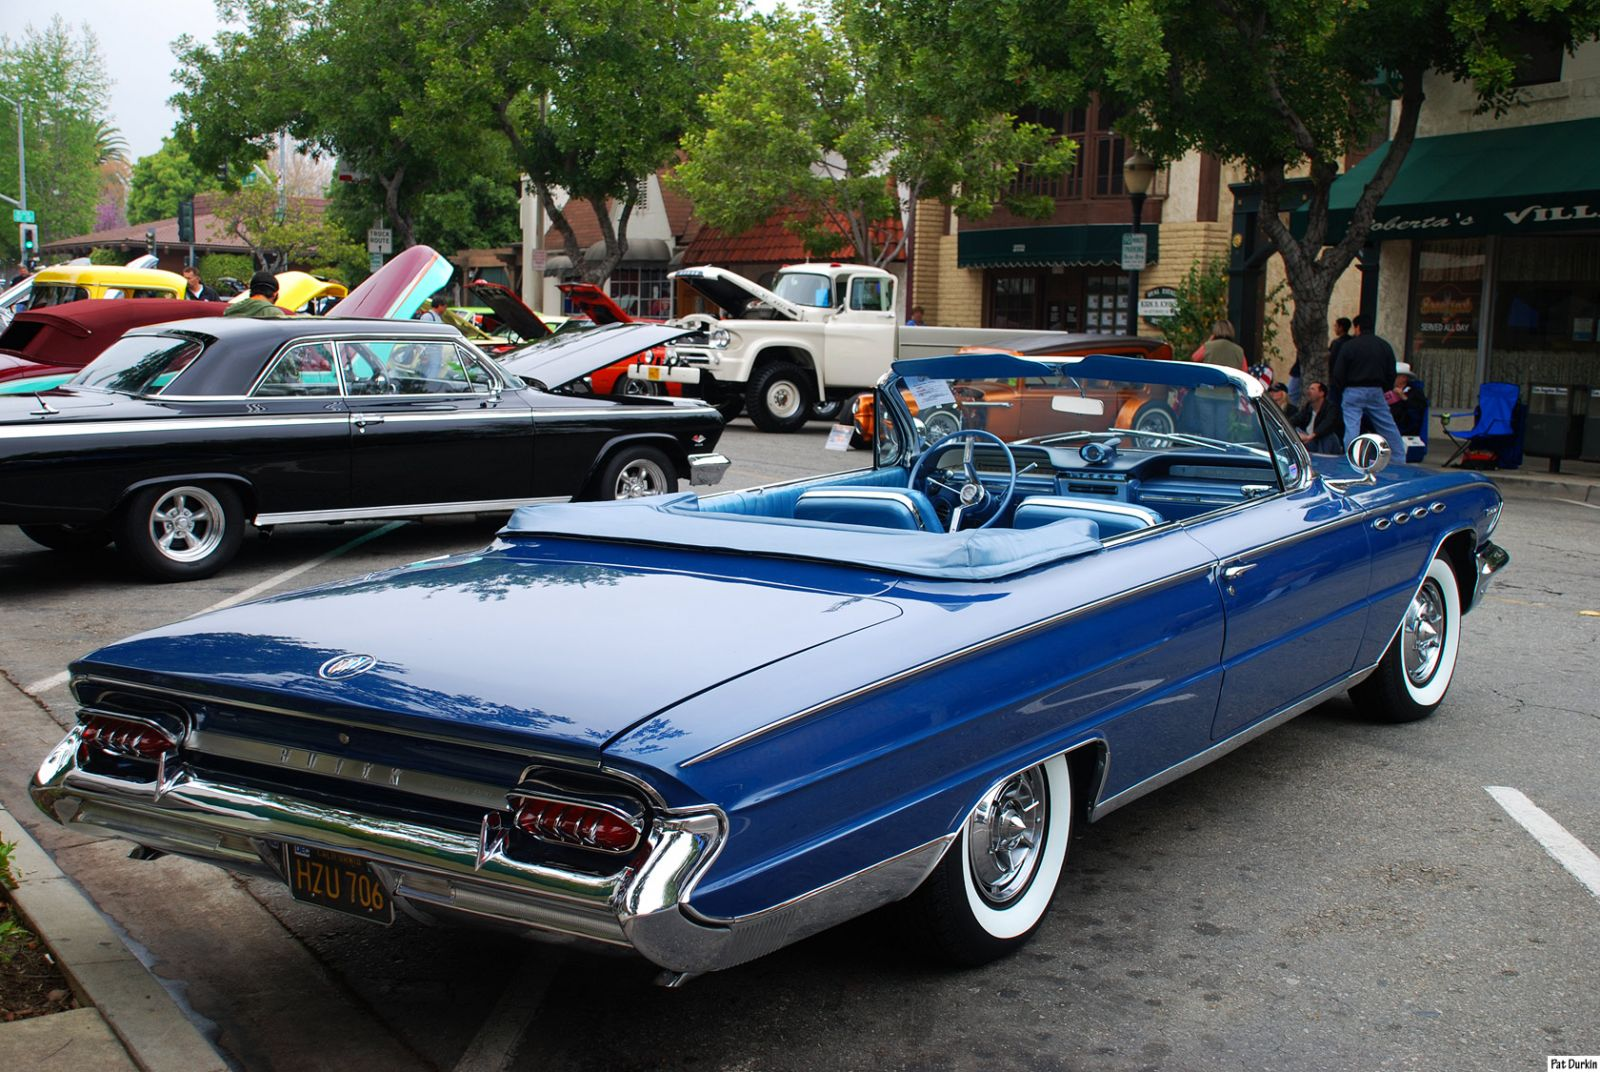 hight resolution of 1961 buick electra 225 convertible with top down dk met blu rvr